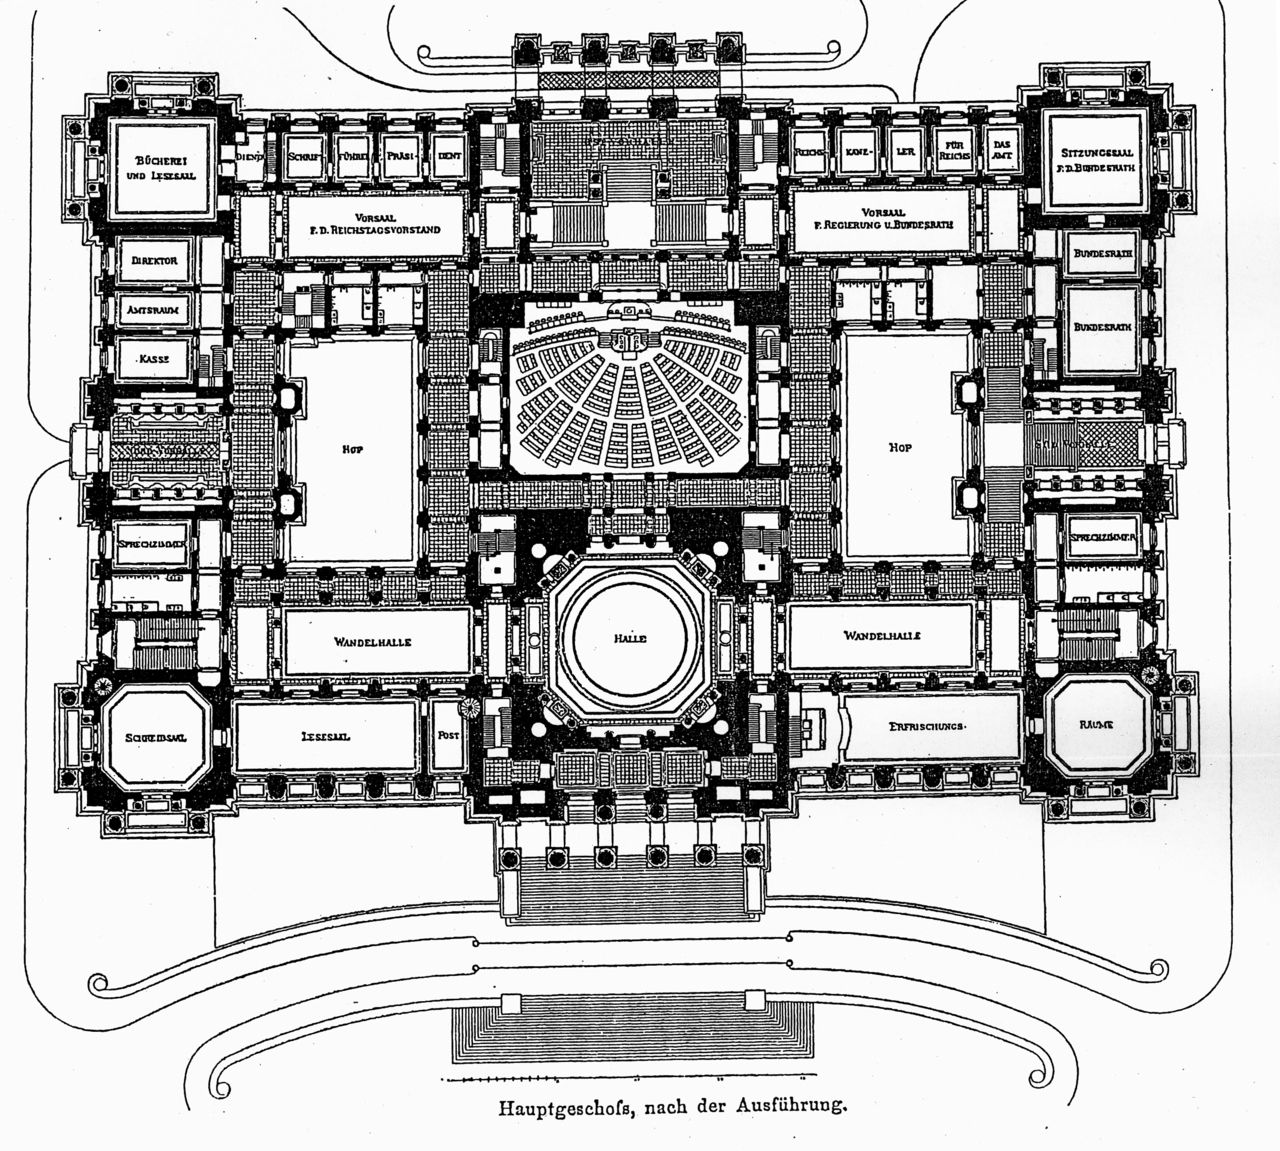 Plan Of The Main Floor Of The Reichstag Berlin Architecture Mapping Berlin Architecture Plan